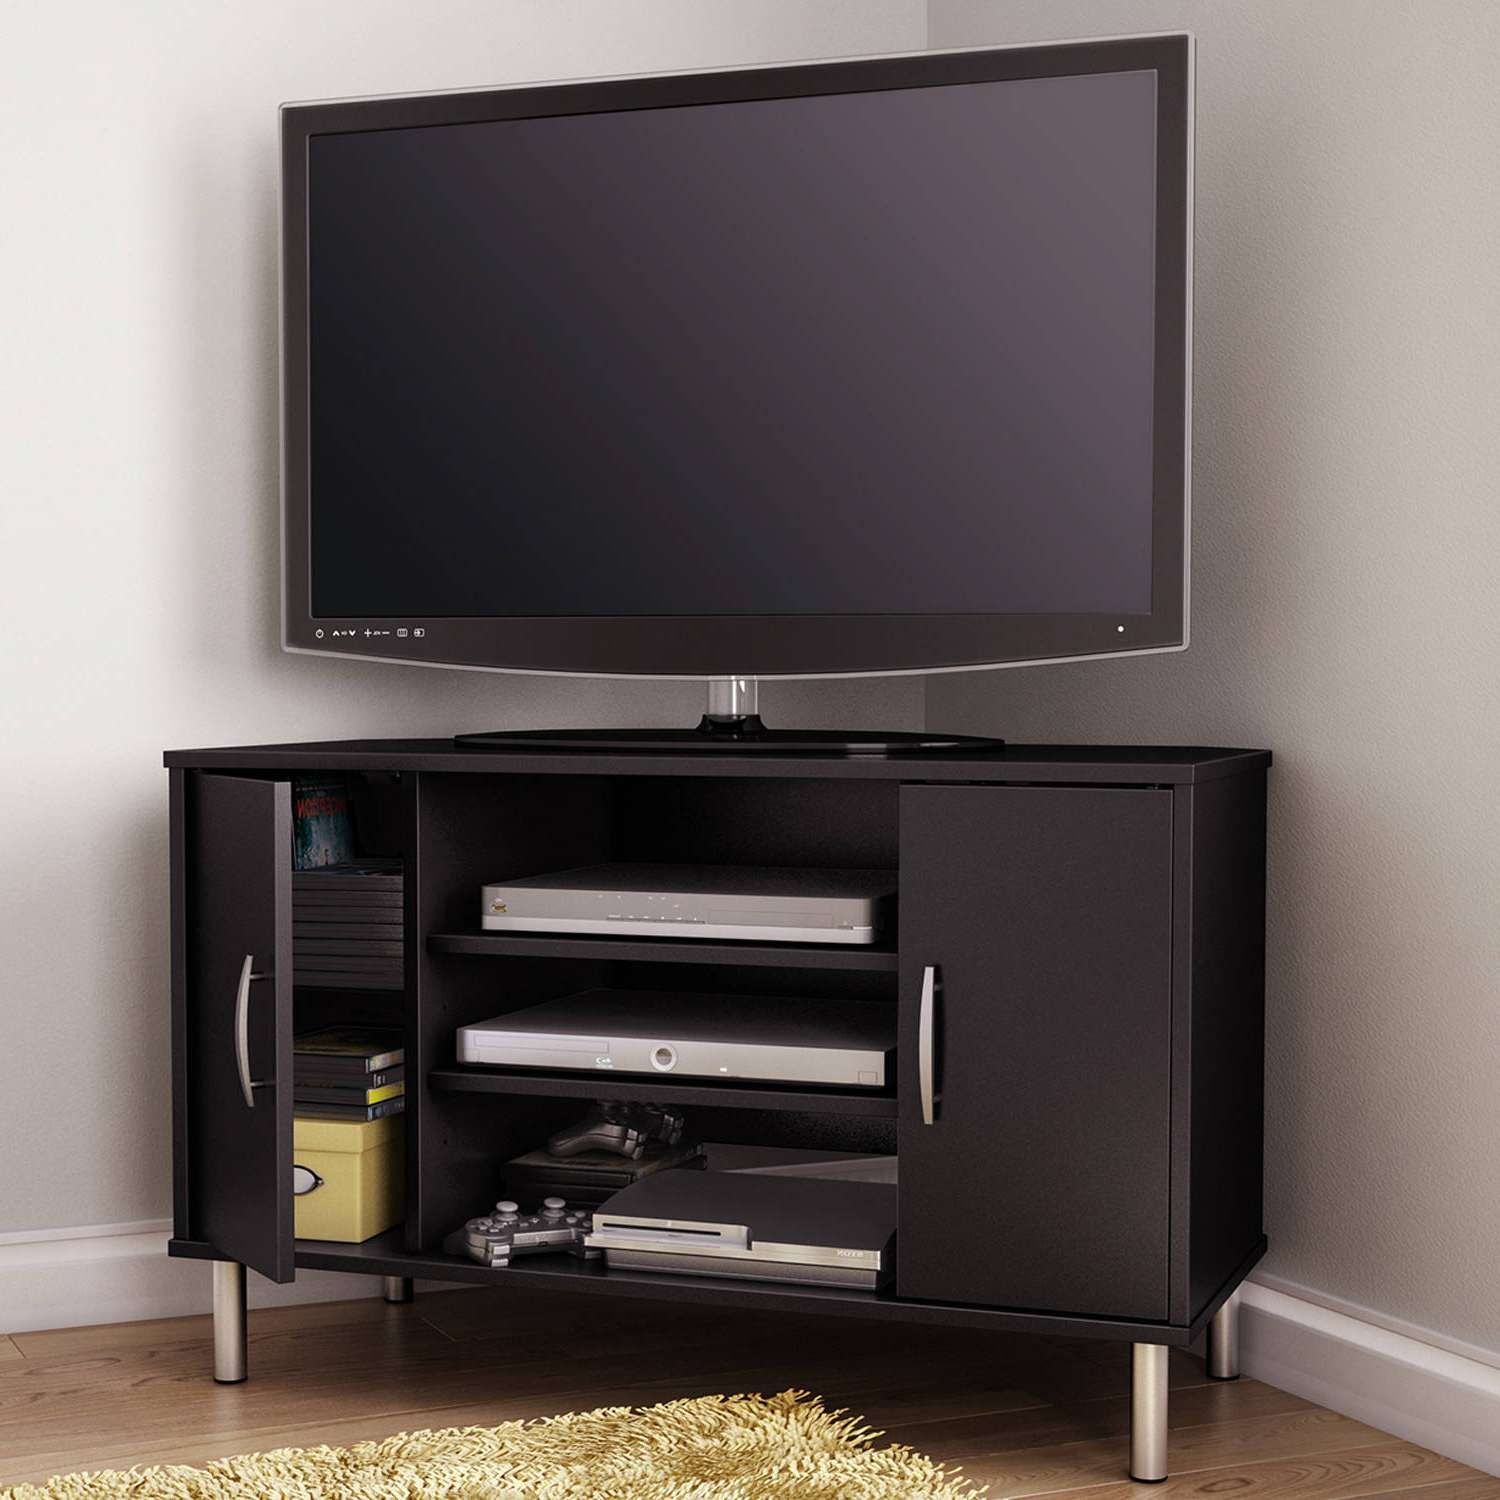 Corner Tv Stands Top Best Rated Cabinets Pictures Tables For Flat Throughout Corner Tv Cabinets For Flat Screen (View 8 of 20)